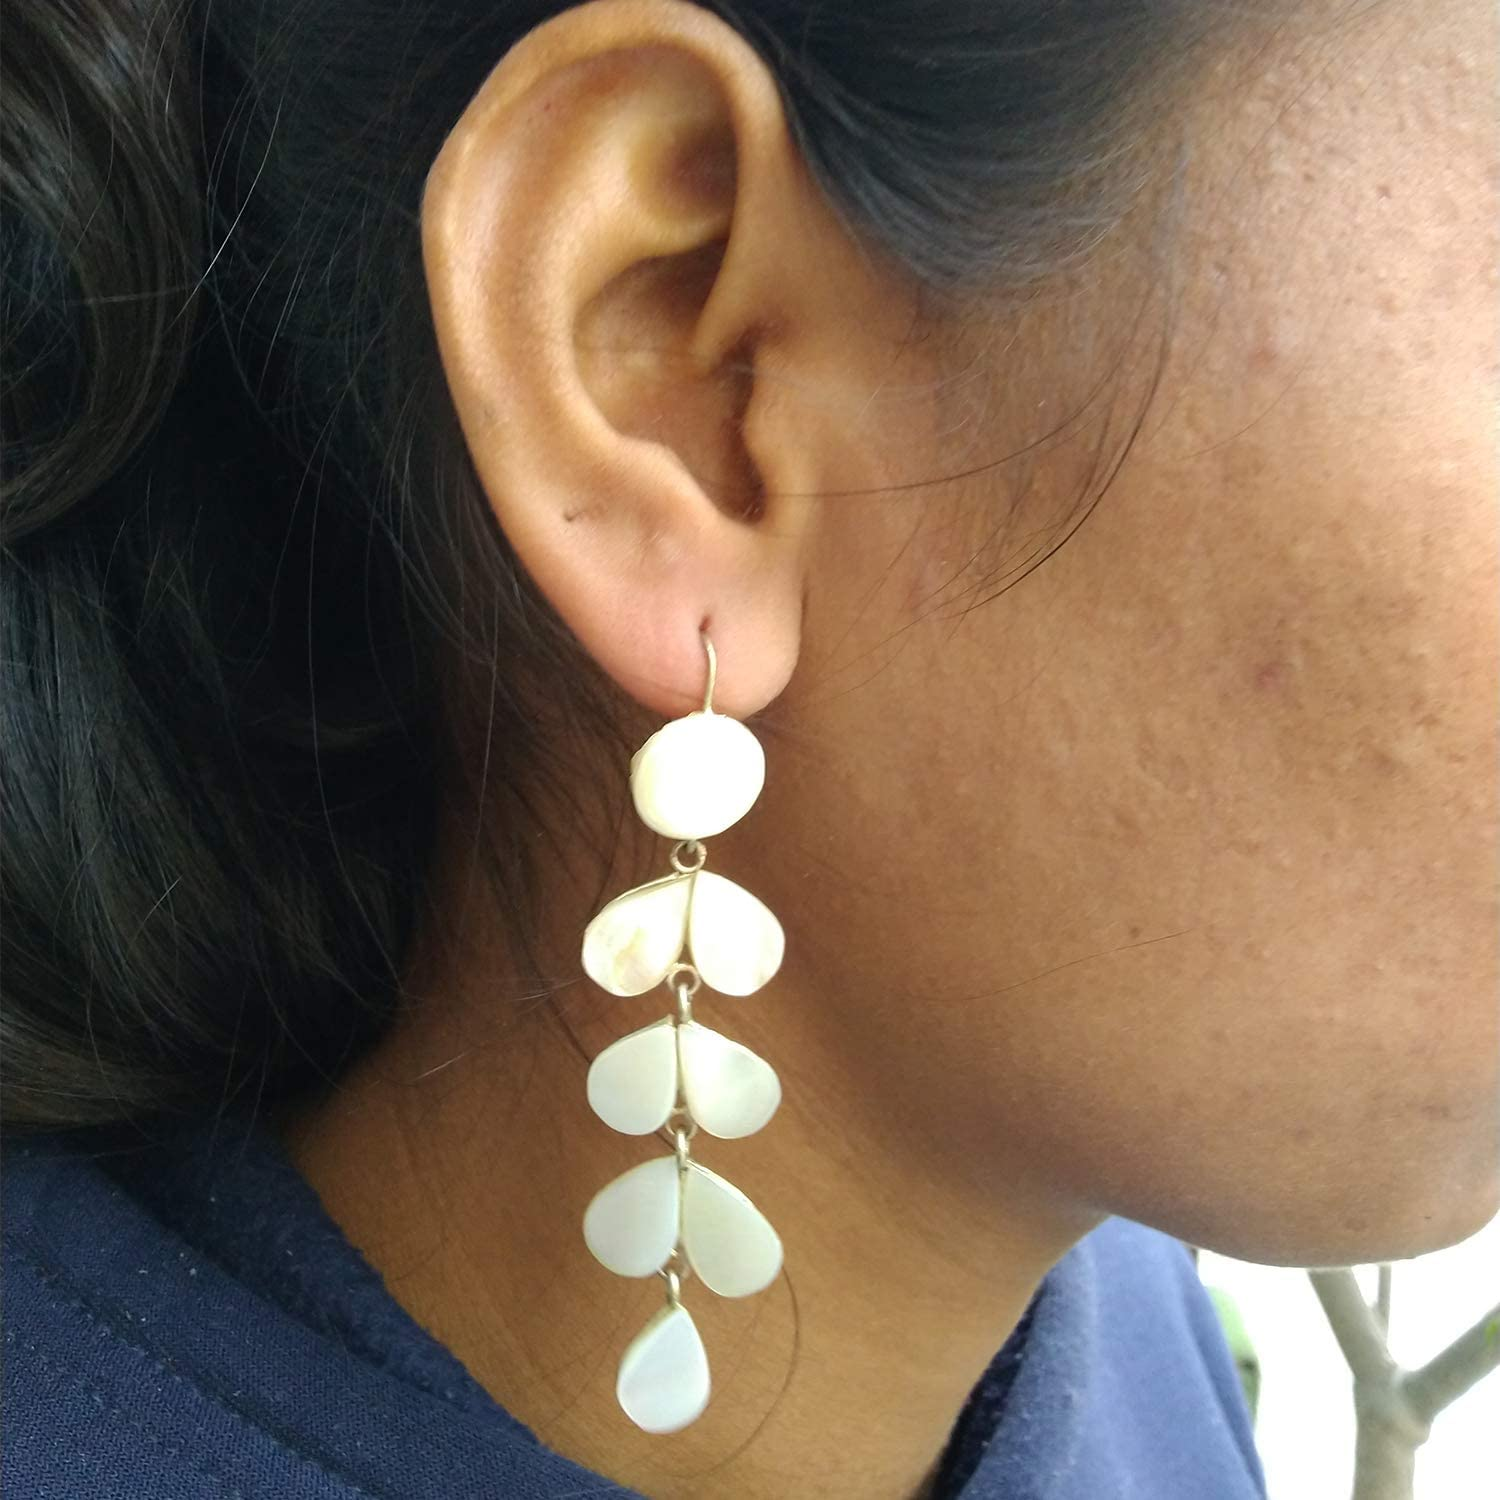 India Meets India Handmade Crafted Real Sea Shell Earrings Leaf Design Lightweight Jewelry